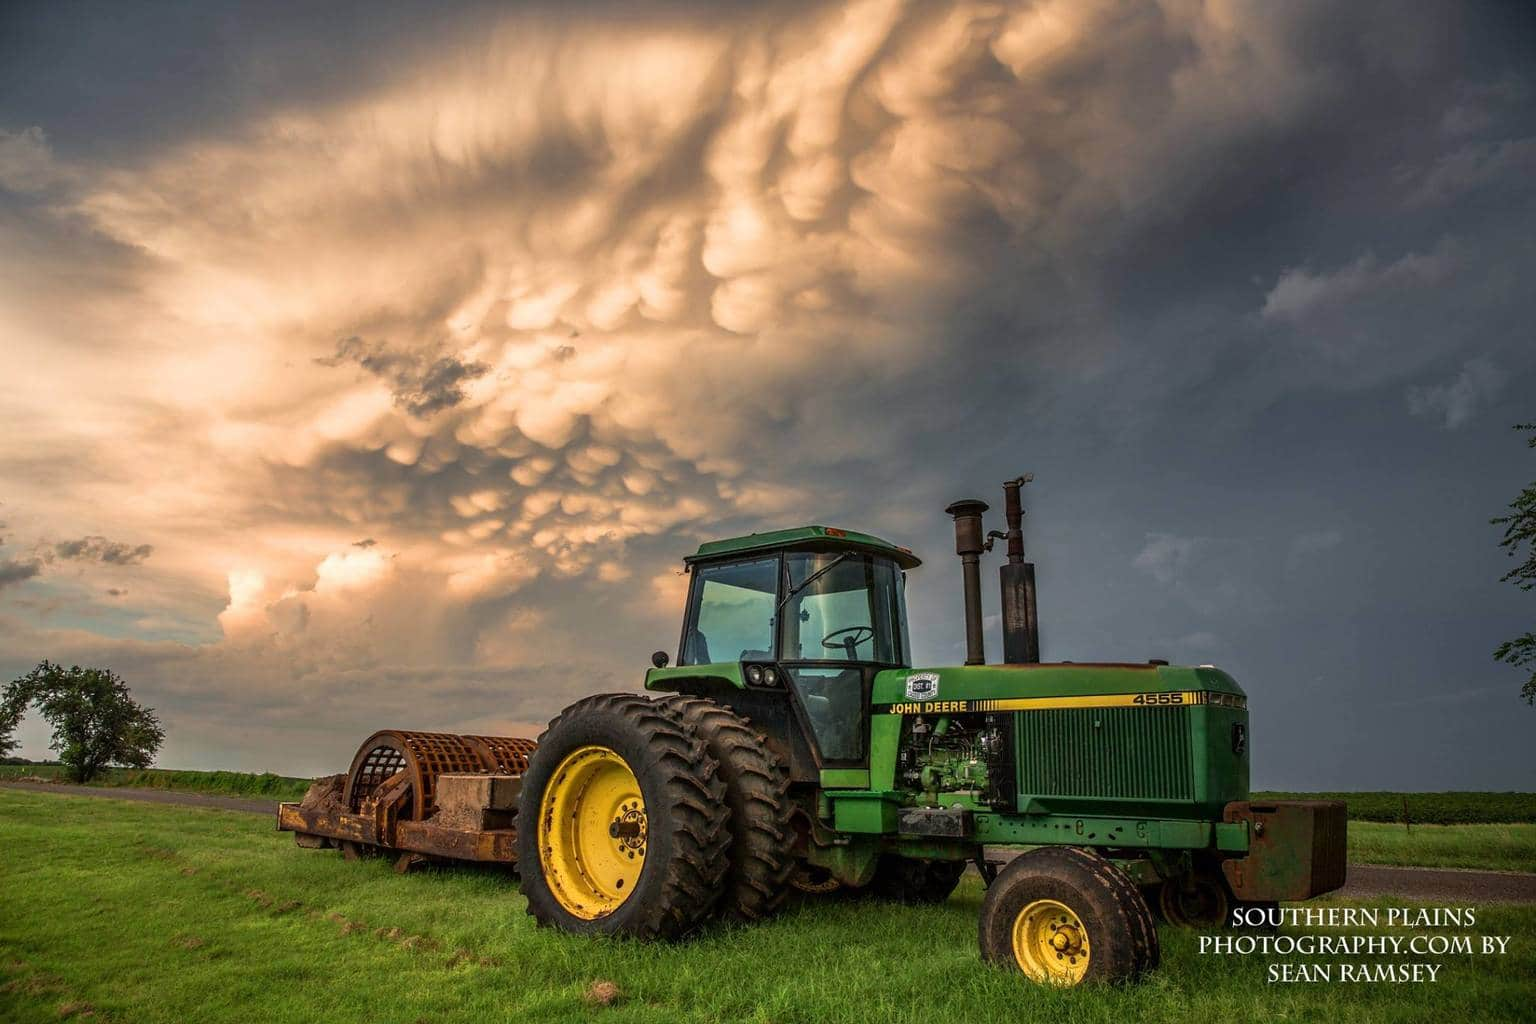 A scene from along Highway 152 in Western Oklahoma, August 18th, 2015.